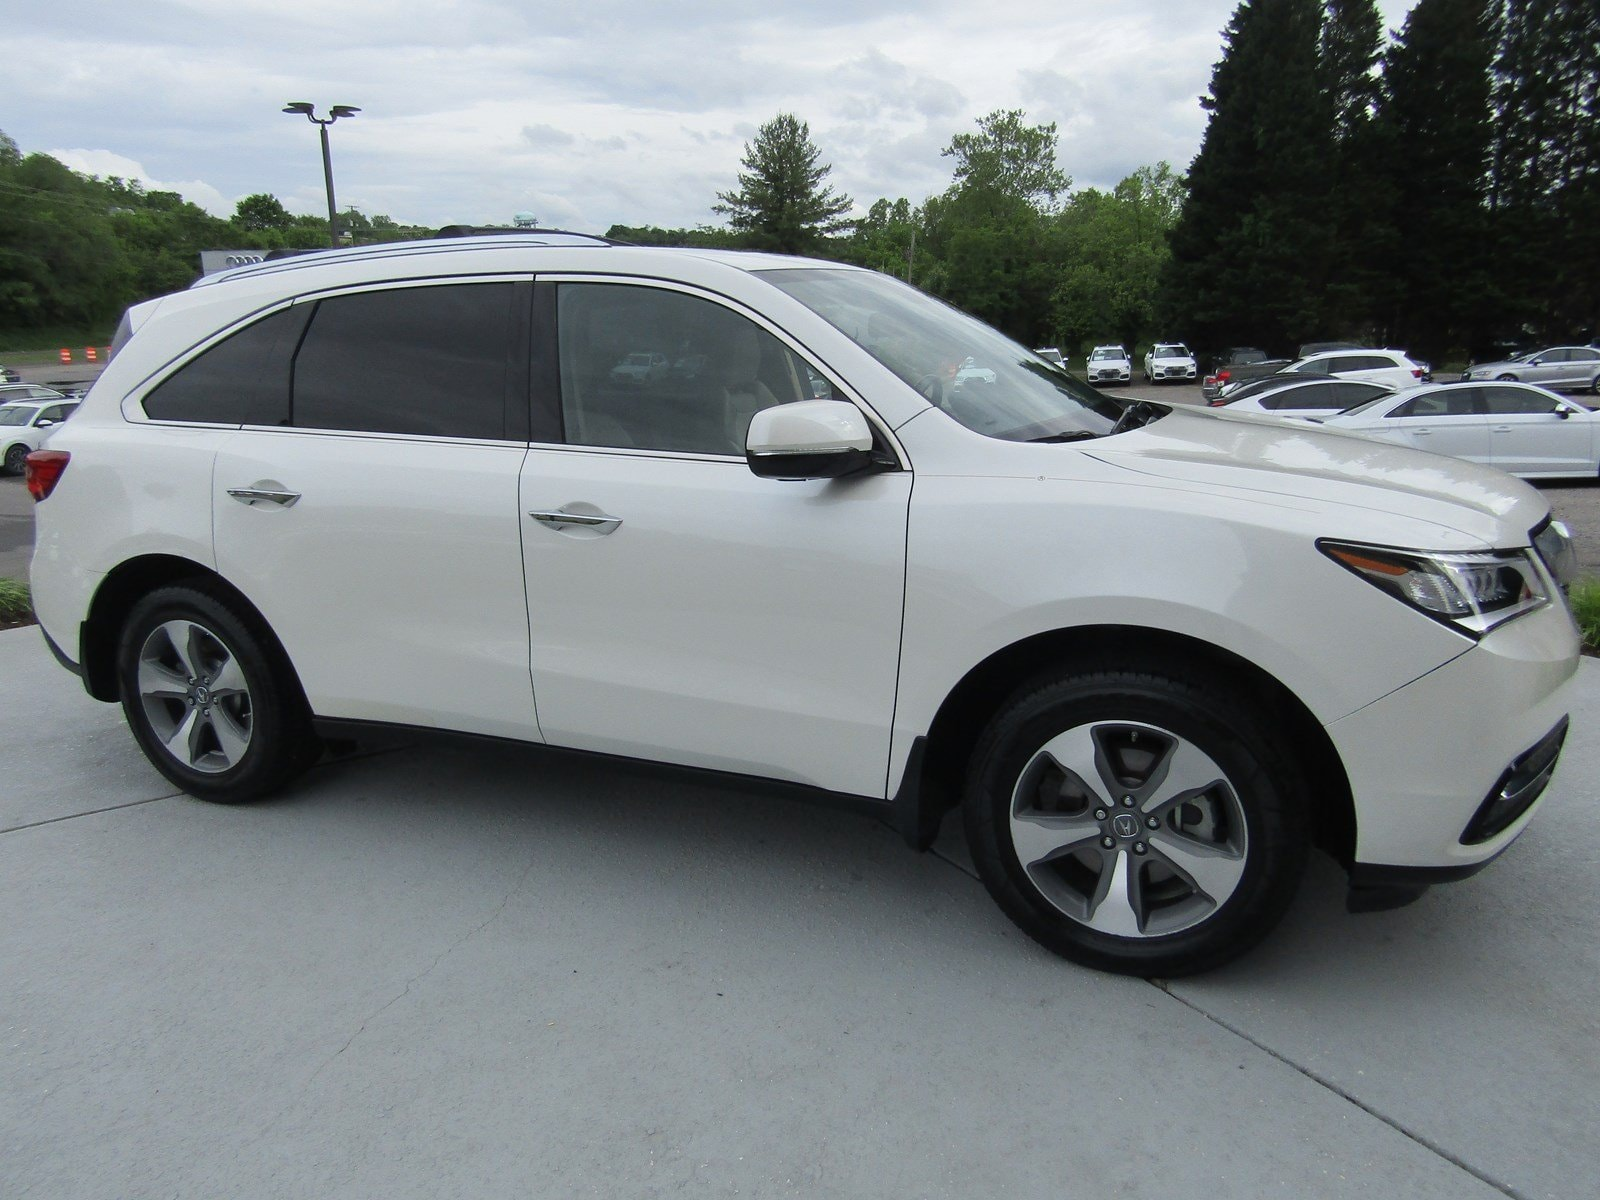 Featured Pre Owned 2014 Acura MDX MDX SUV for sale near you in Roanoke, VA